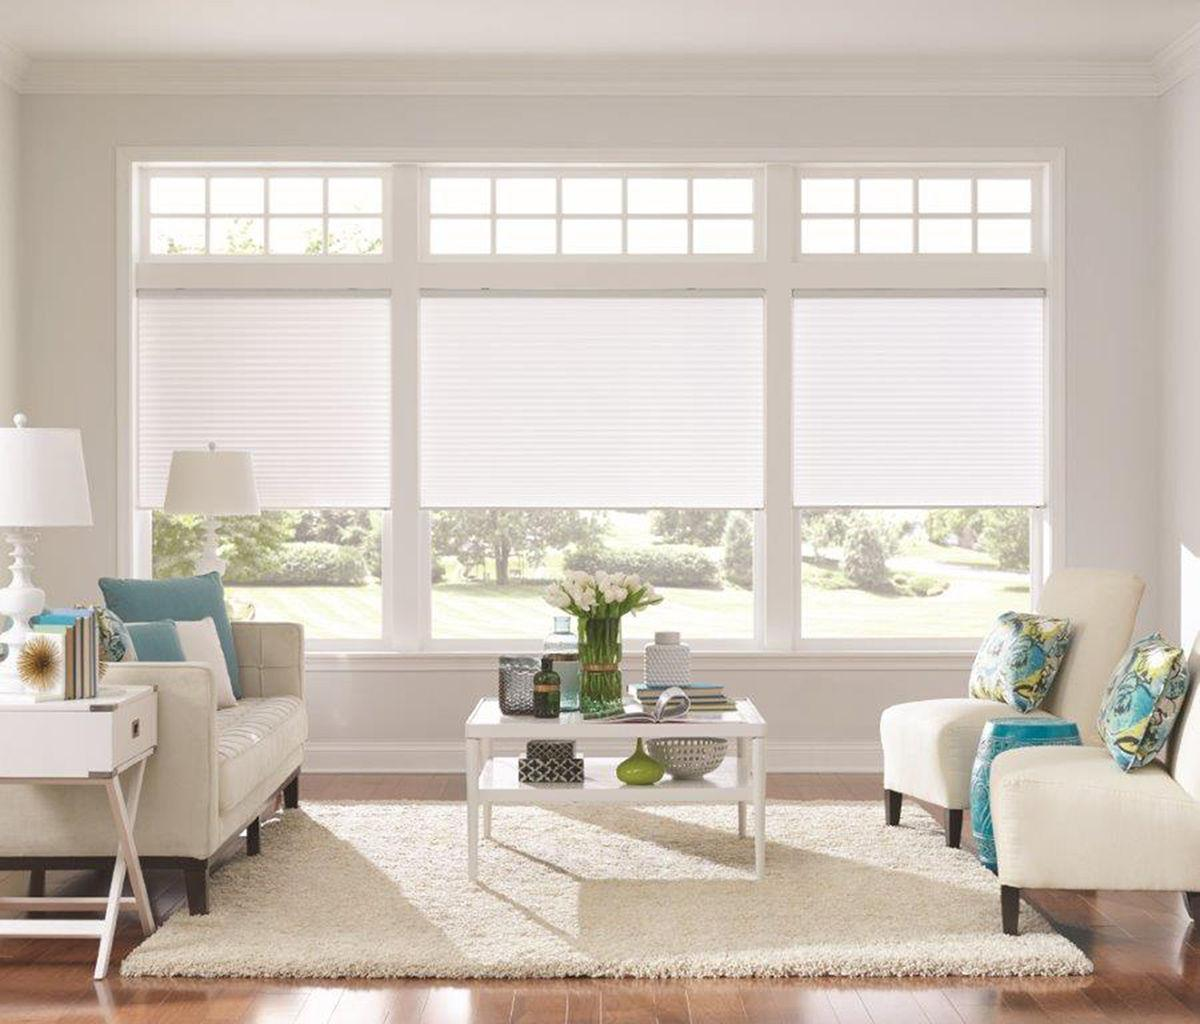 honeycombs treatments window bedroom dressed ne talent nan available in blinds h and shades motorized a at well omaha